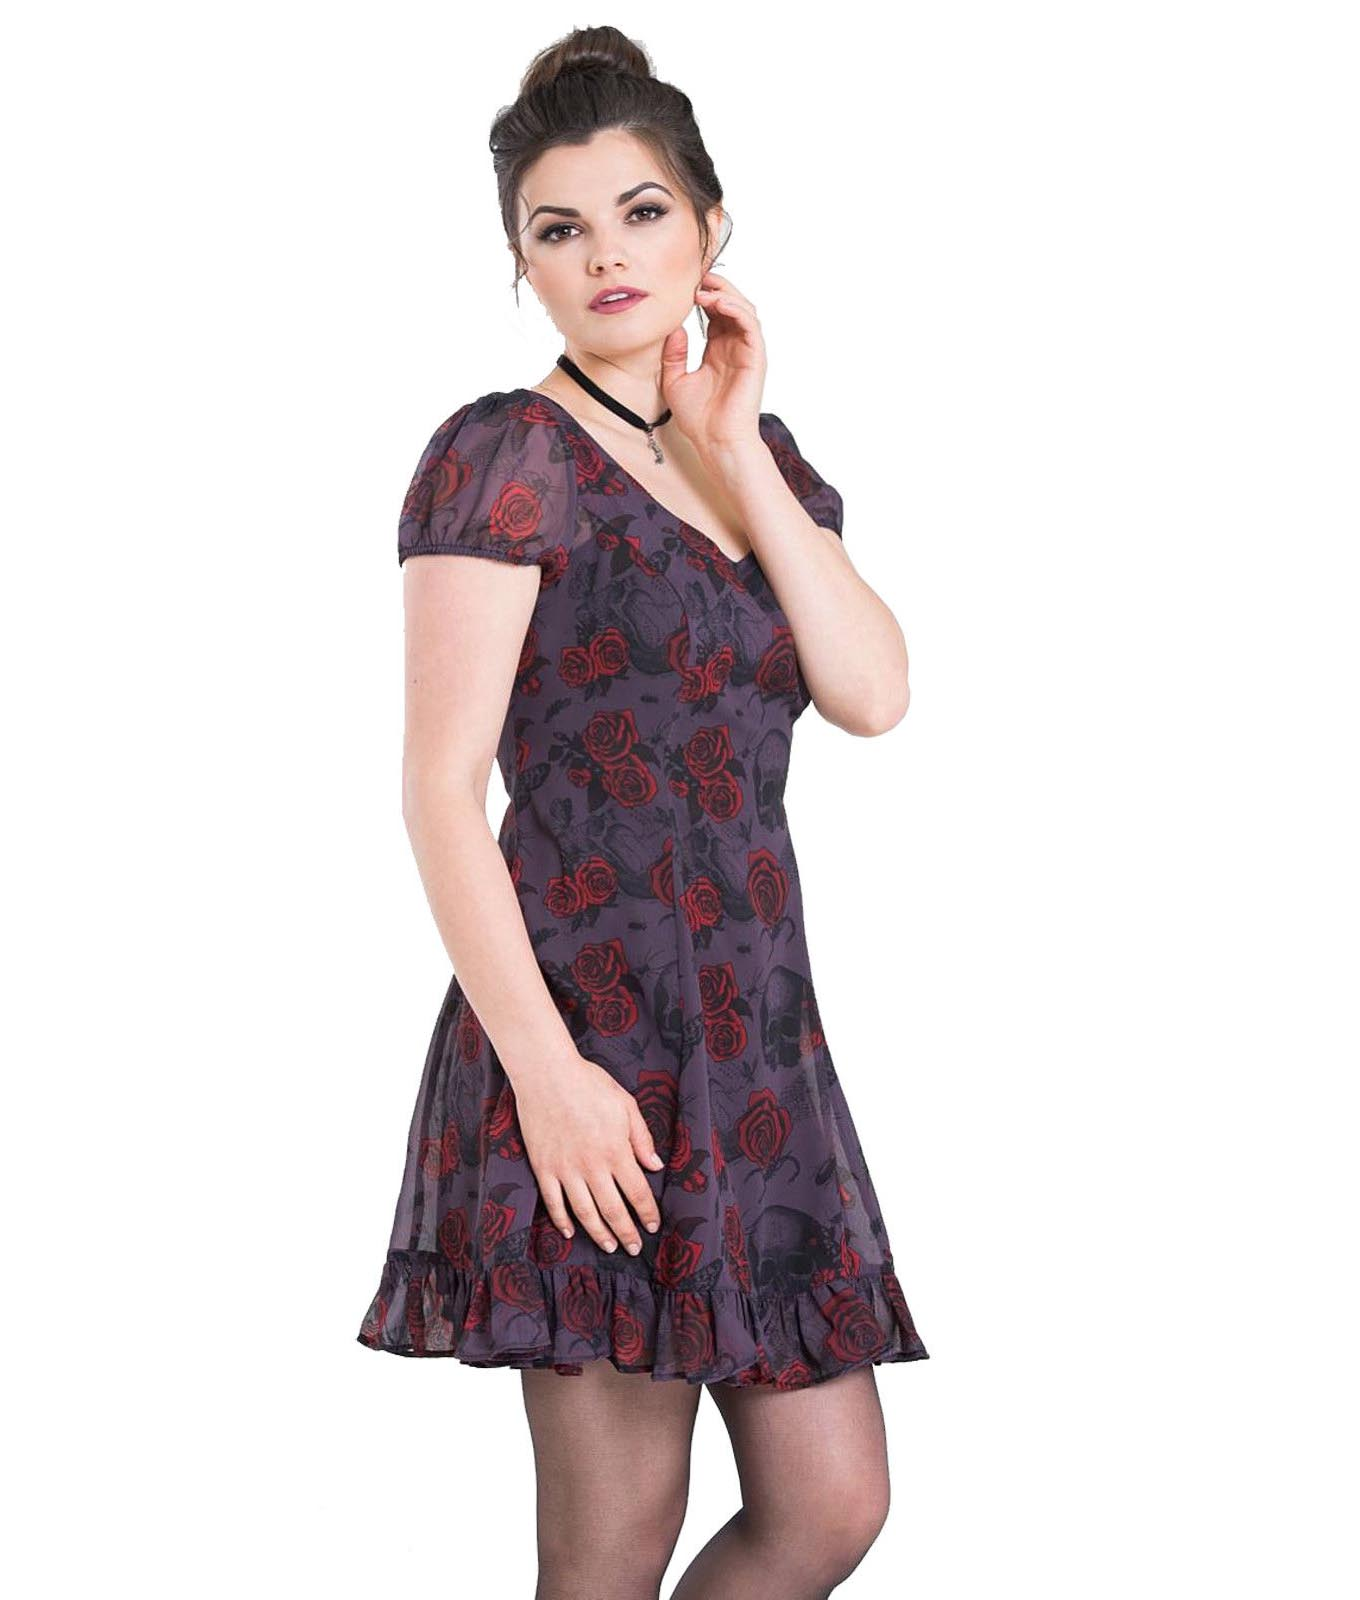 Hell-Bunny-Goth-Floaty-Mini-Dress-BUGS-amp-ROSES-Skulls-Butterfly-Purple-All-Sizes thumbnail 33